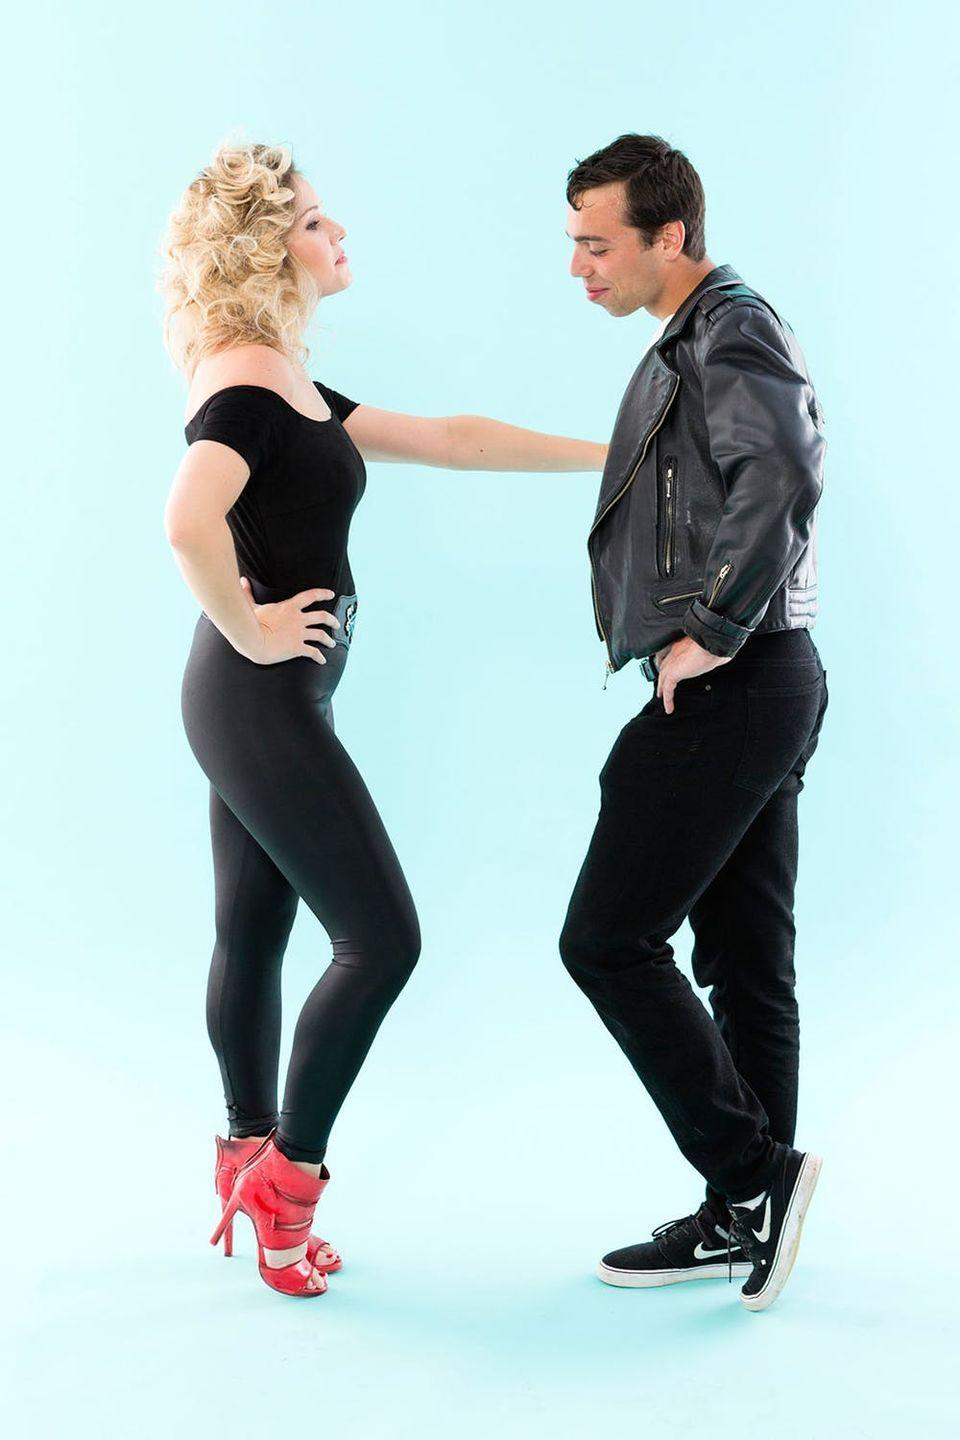 """<p>Though set in the '50s, this movie was a huge hit when released in the '70s. Dress up in a Grease-inspired costume for Halloween.</p><p><strong>Get the tutorial at <a href=""""https://www.brit.co/grease-halloween-costume/"""" rel=""""nofollow noopener"""" target=""""_blank"""" data-ylk=""""slk:Brit & Co"""" class=""""link rapid-noclick-resp"""">Brit & Co</a>.</strong></p><p><strong><a class=""""link rapid-noclick-resp"""" href=""""https://www.amazon.com/Allegra-Womens-Shoulder-Christmas-Black/dp/B01E4DLGGA/?tag=syn-yahoo-20&ascsubtag=%5Bartid%7C10050.g.22500148%5Bsrc%7Cyahoo-us"""" rel=""""nofollow noopener"""" target=""""_blank"""" data-ylk=""""slk:SHOP BLACK TOP"""">SHOP BLACK TOP</a></strong></p>"""